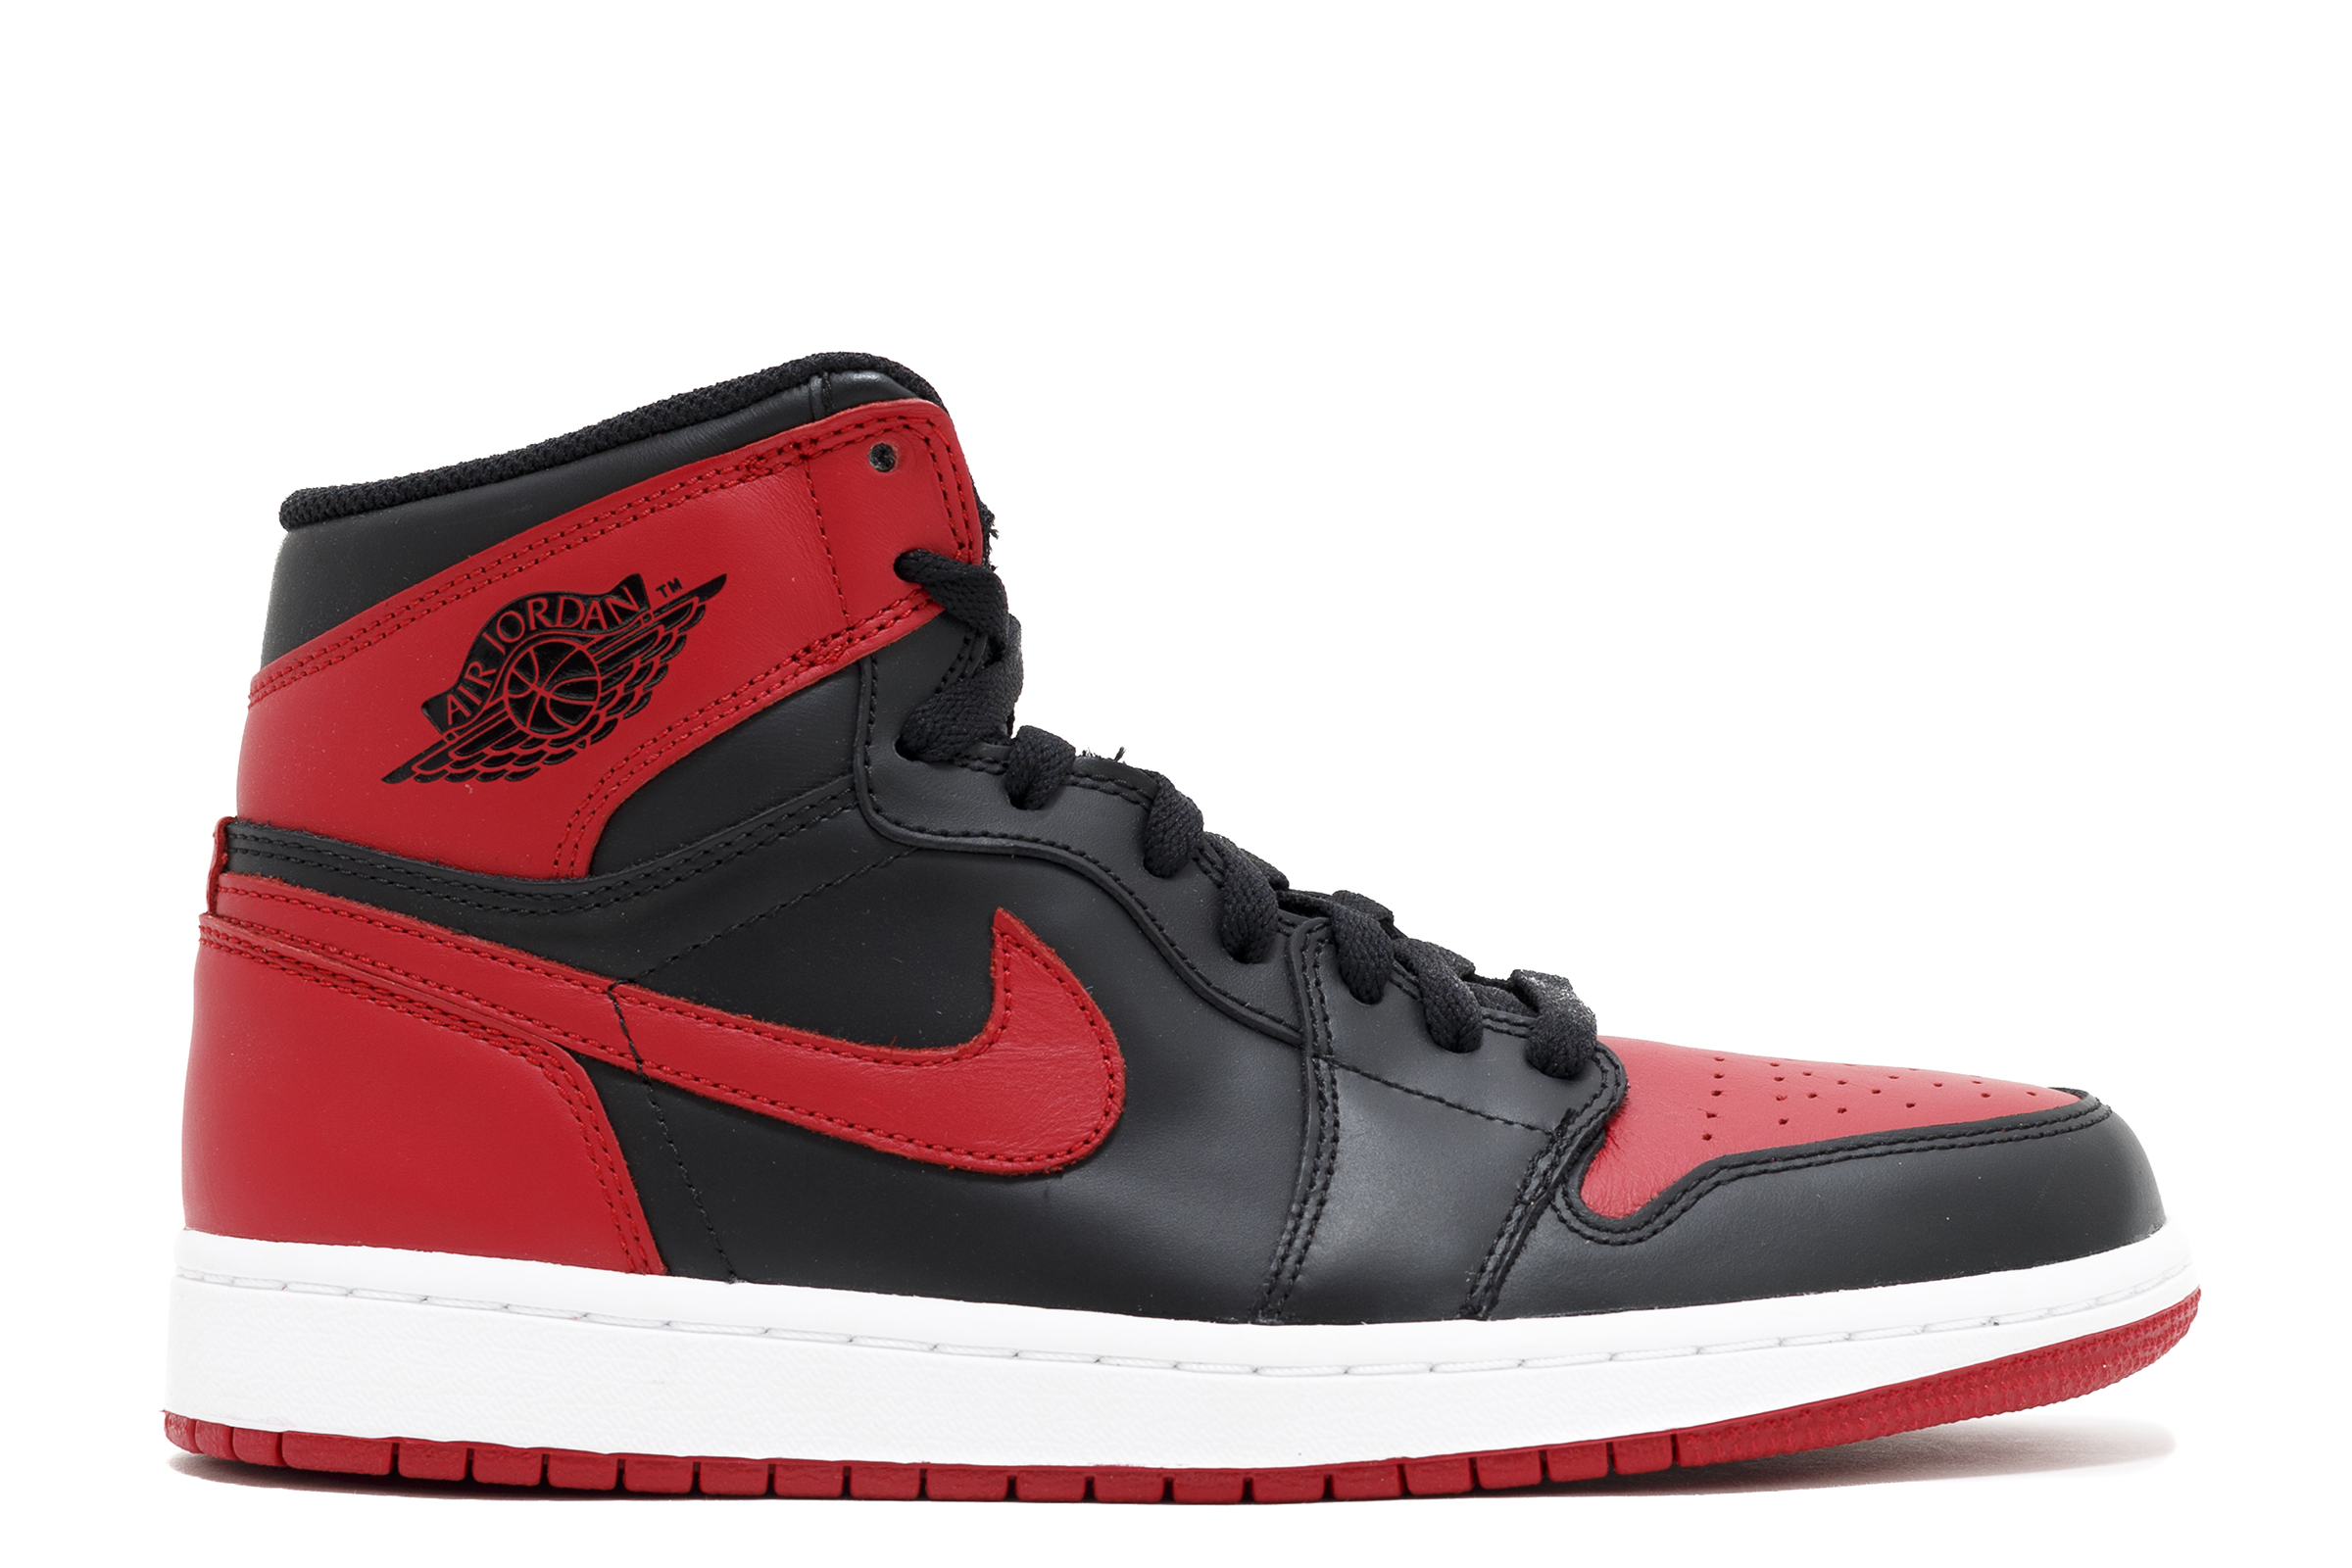 info for dbc3e 1c197 The One That Started It All  A History of the Jordan 1 - Jordan 1 History    Grailed